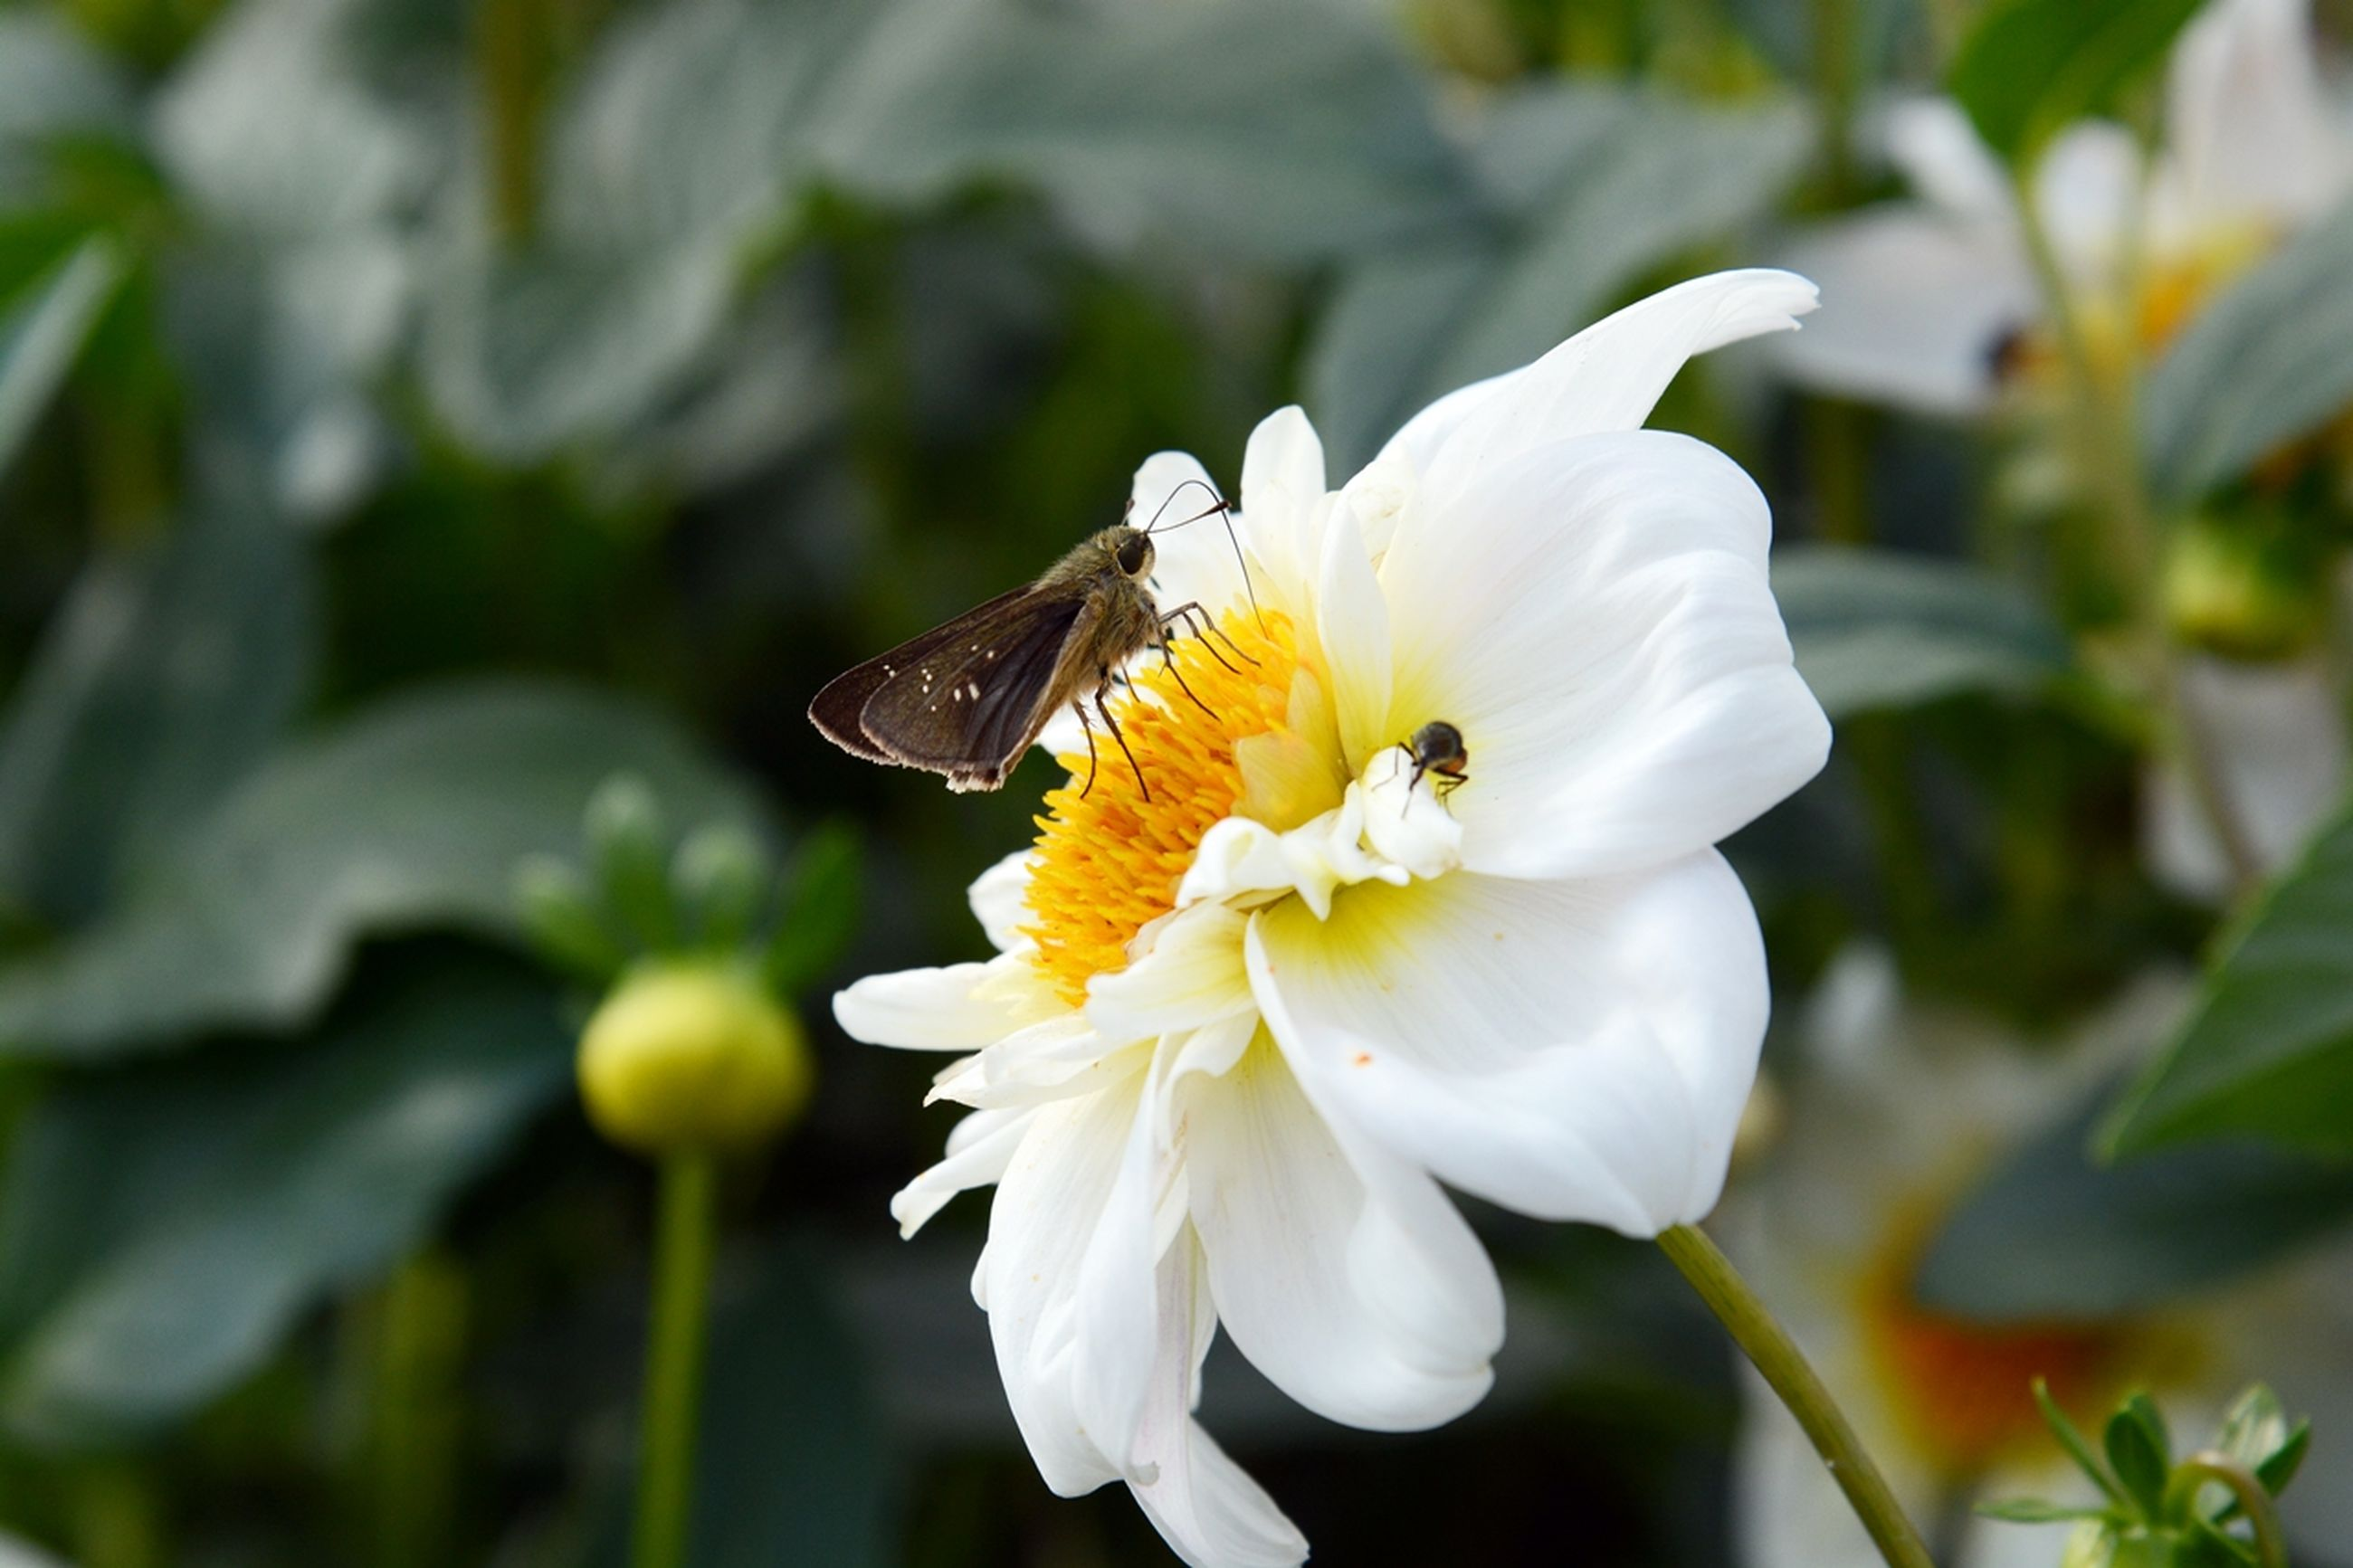 flower, petal, one animal, animal themes, flower head, white color, animals in the wild, freshness, insect, focus on foreground, wildlife, fragility, close-up, beauty in nature, yellow, growth, nature, pollen, blooming, bee